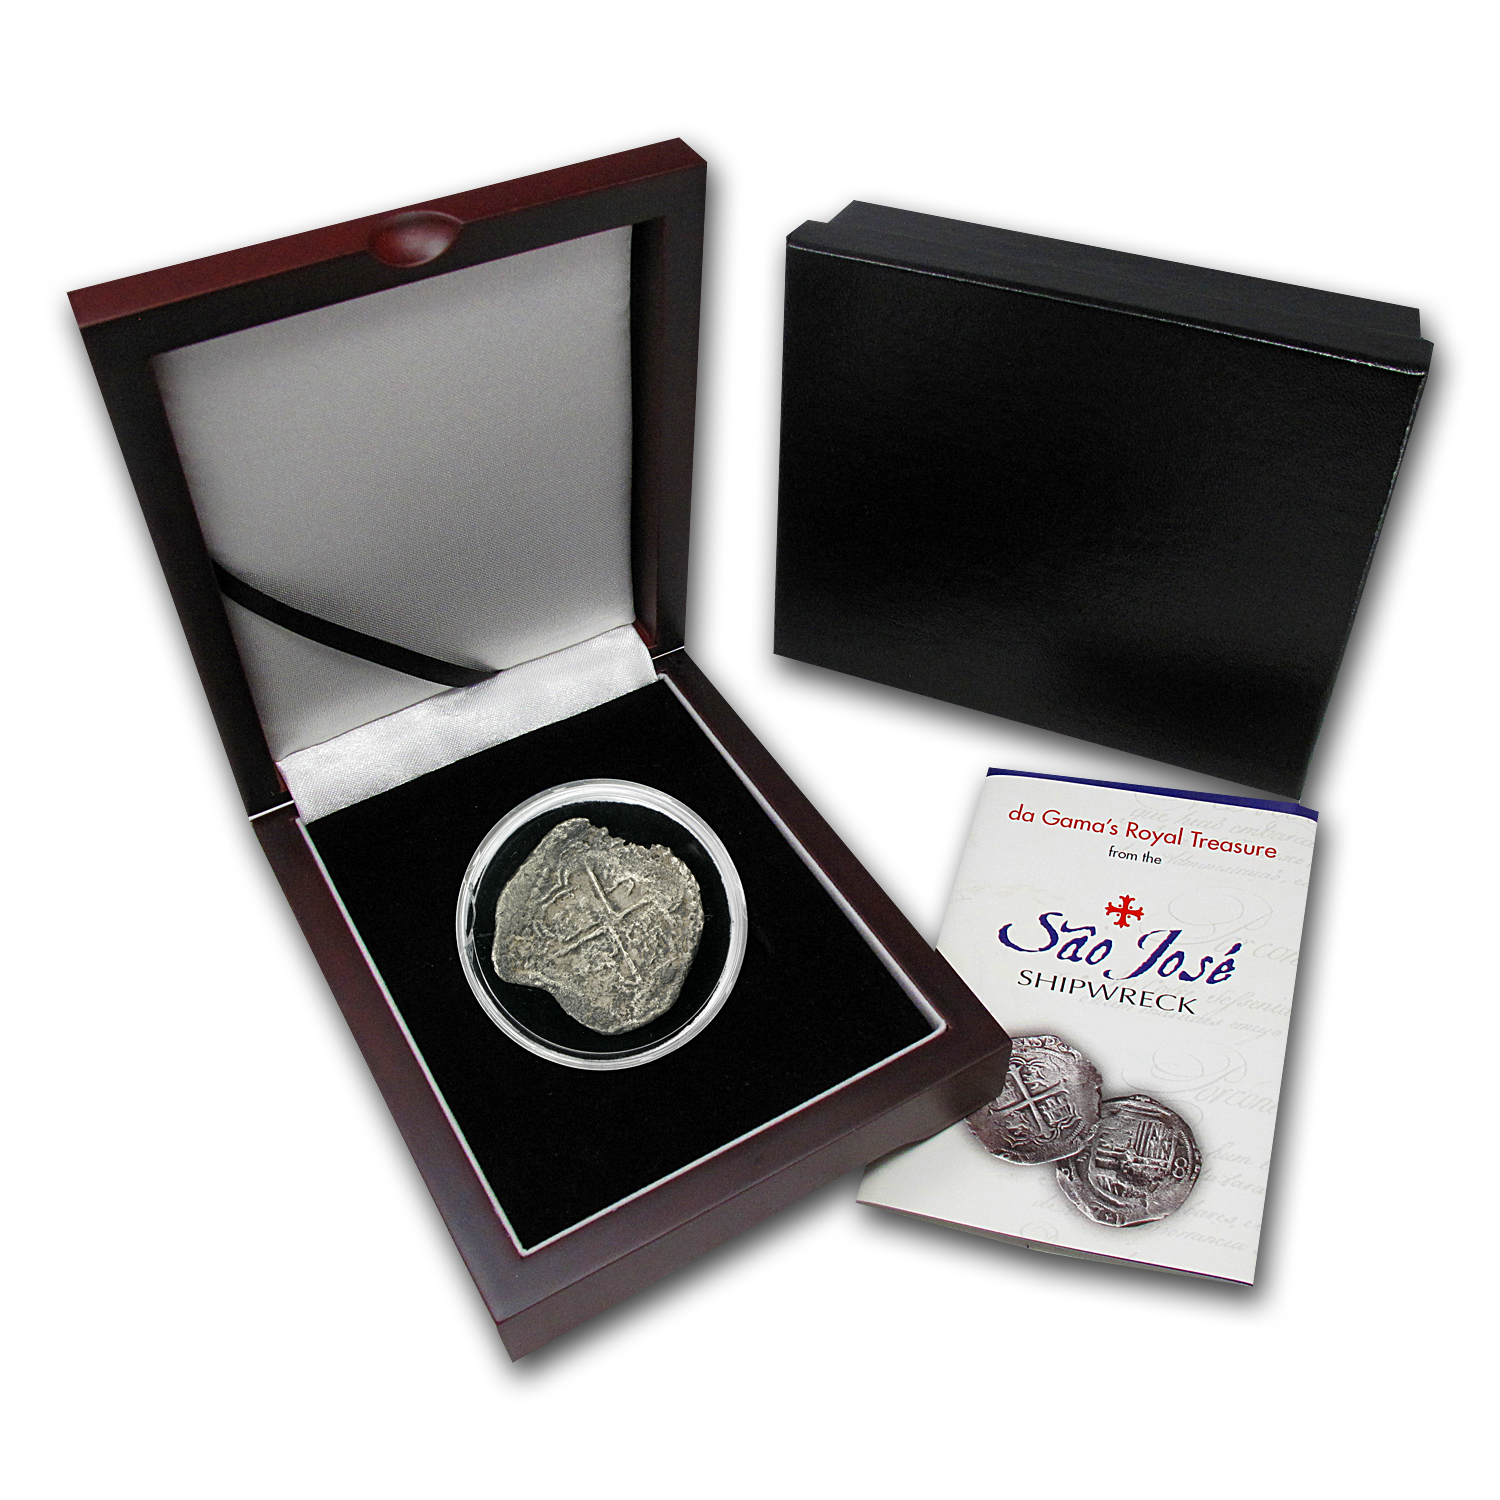 Sao Jose Shipwreck Silver 8 Reales Collection